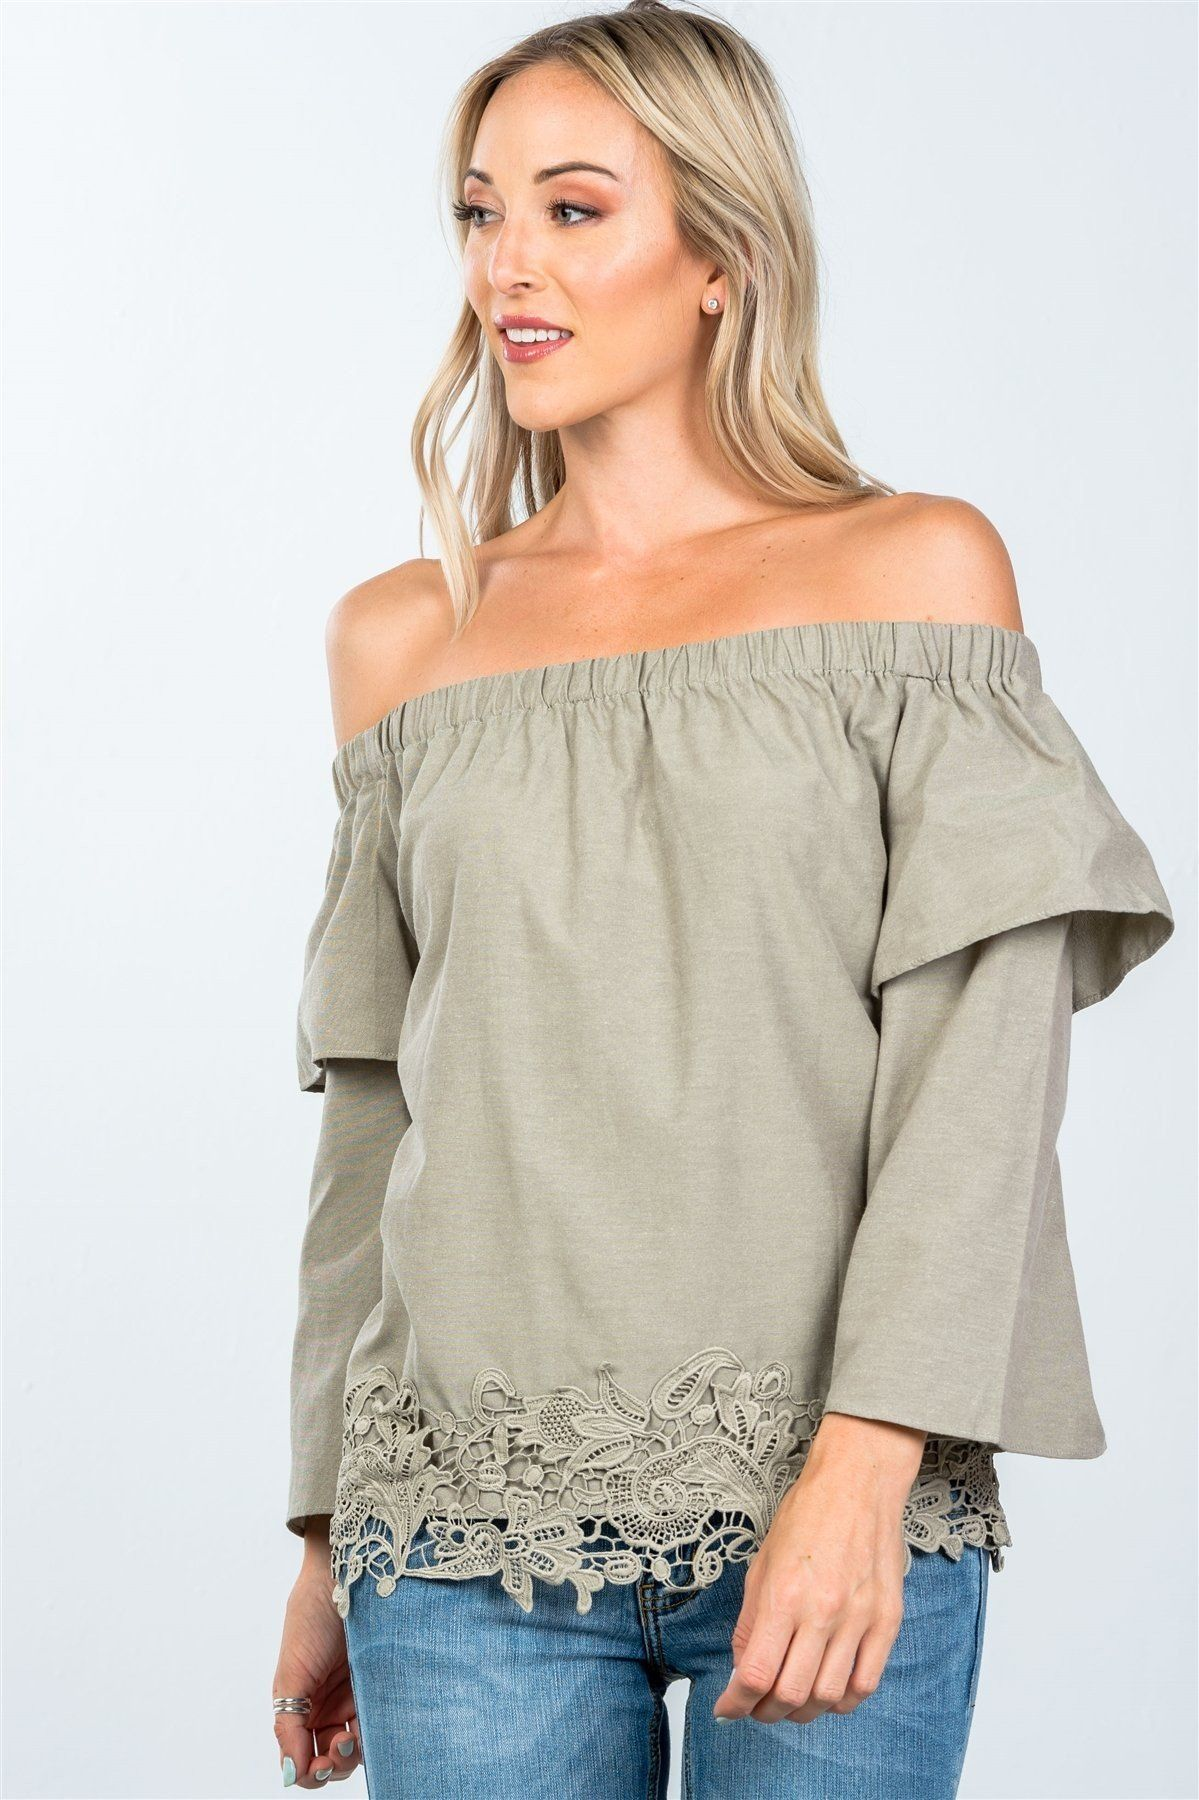 730acd9df12bb Boho Off Shoulder Crochet Hem Top - Just  21.95 at Mercantile Americana  with Free Shipping to all U.S. addresses!